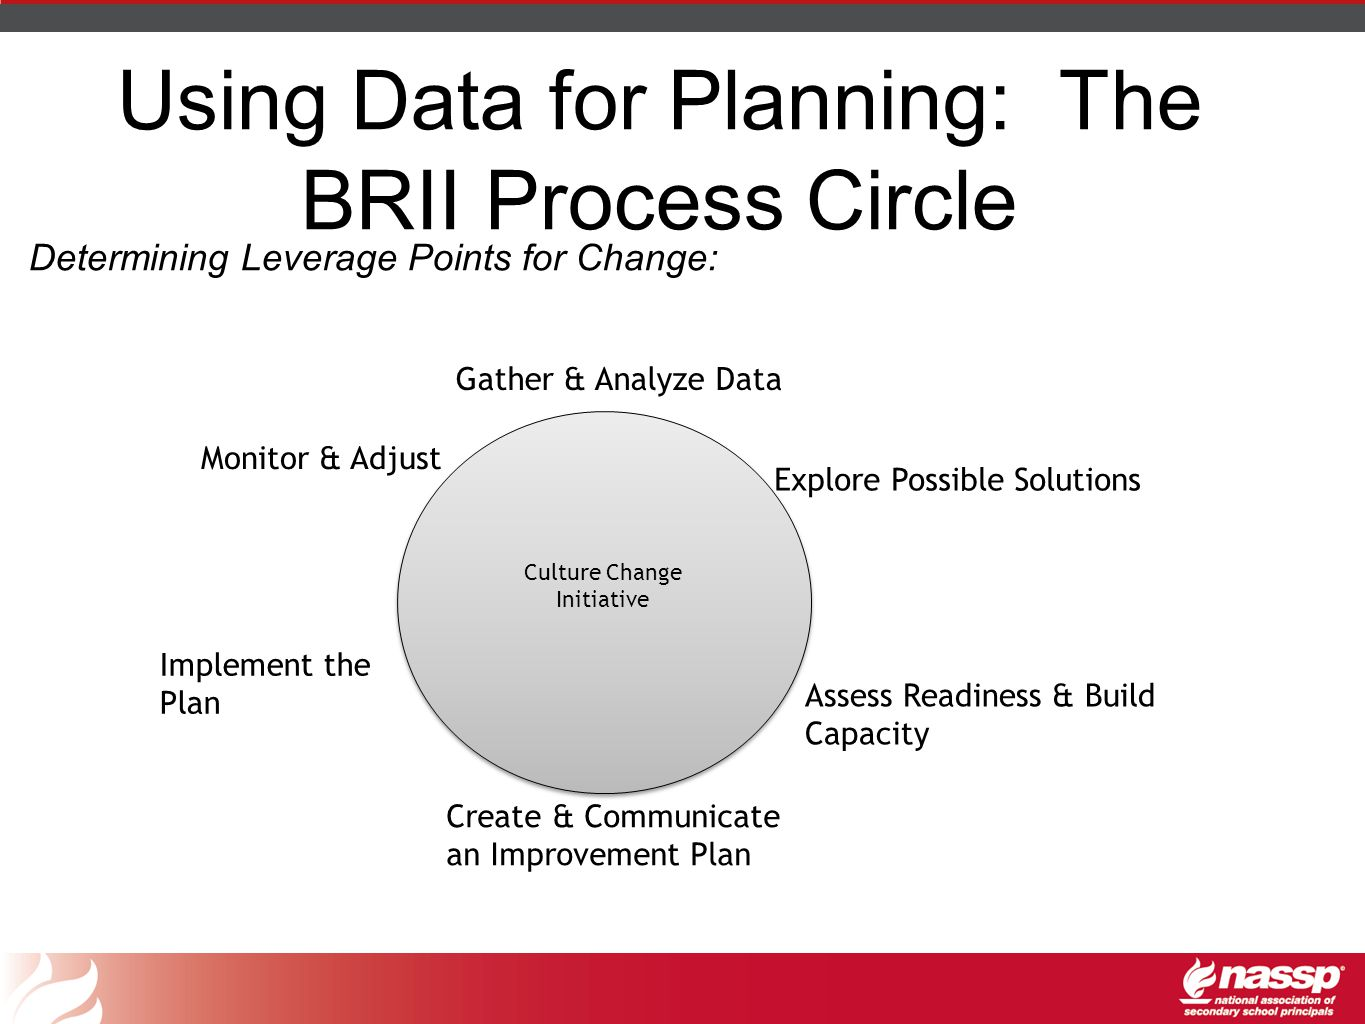 Using Data for Planning: The BRII Process Circle Determining Leverage Points for Change: Explore Possible Solutions Gather & Analyze Data Create & Communicate an Improvement Plan Assess Readiness & Build Capacity Monitor & Adjust Implement the Plan Culture Change Initiative